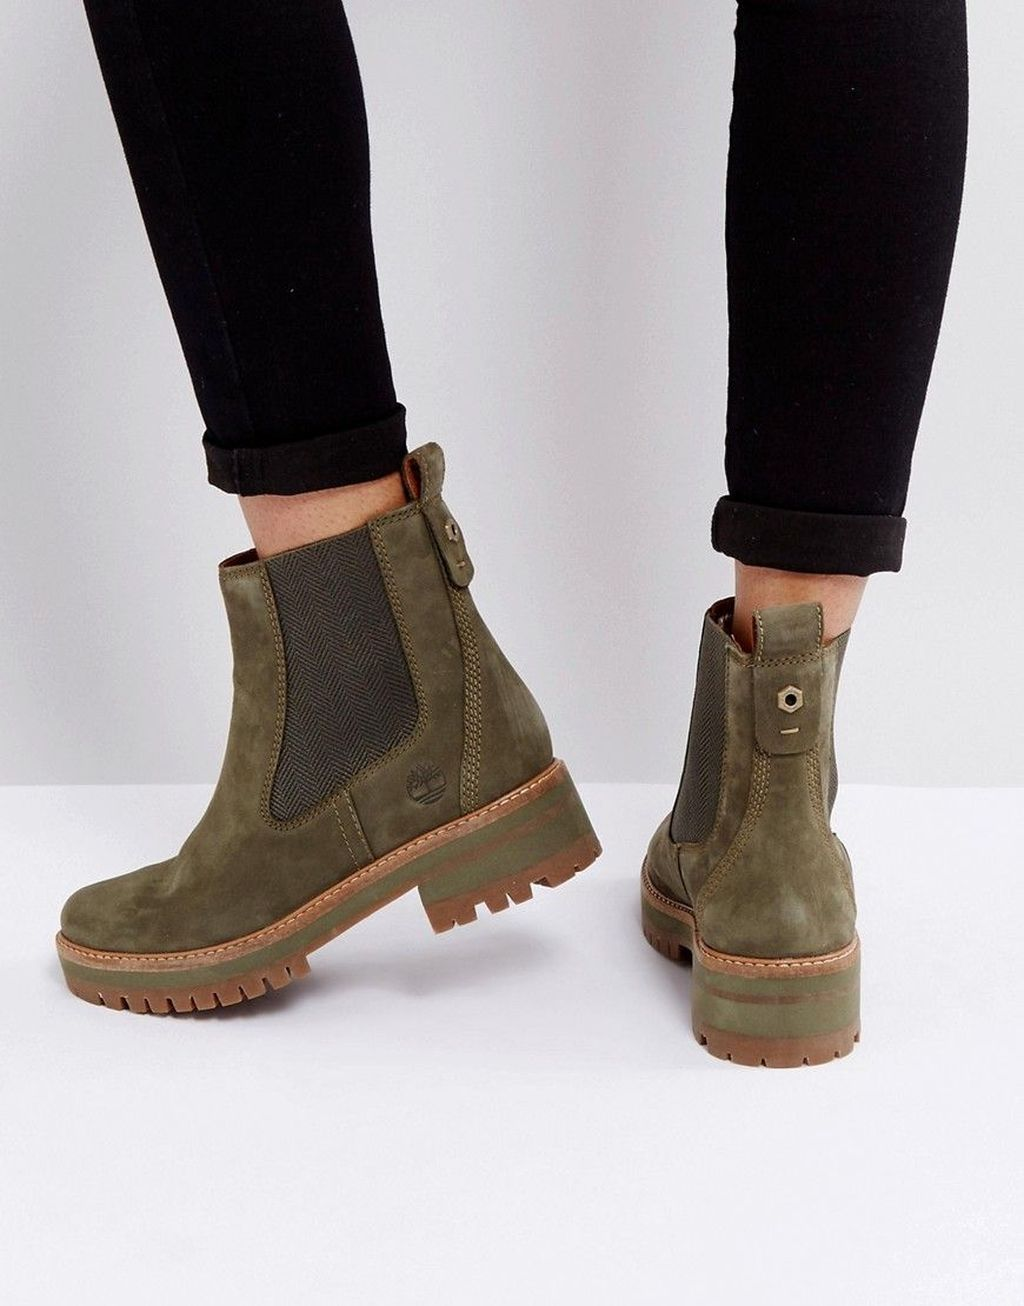 20+ Unusual Flat Ankle Boots Ideas For Women This Winter in